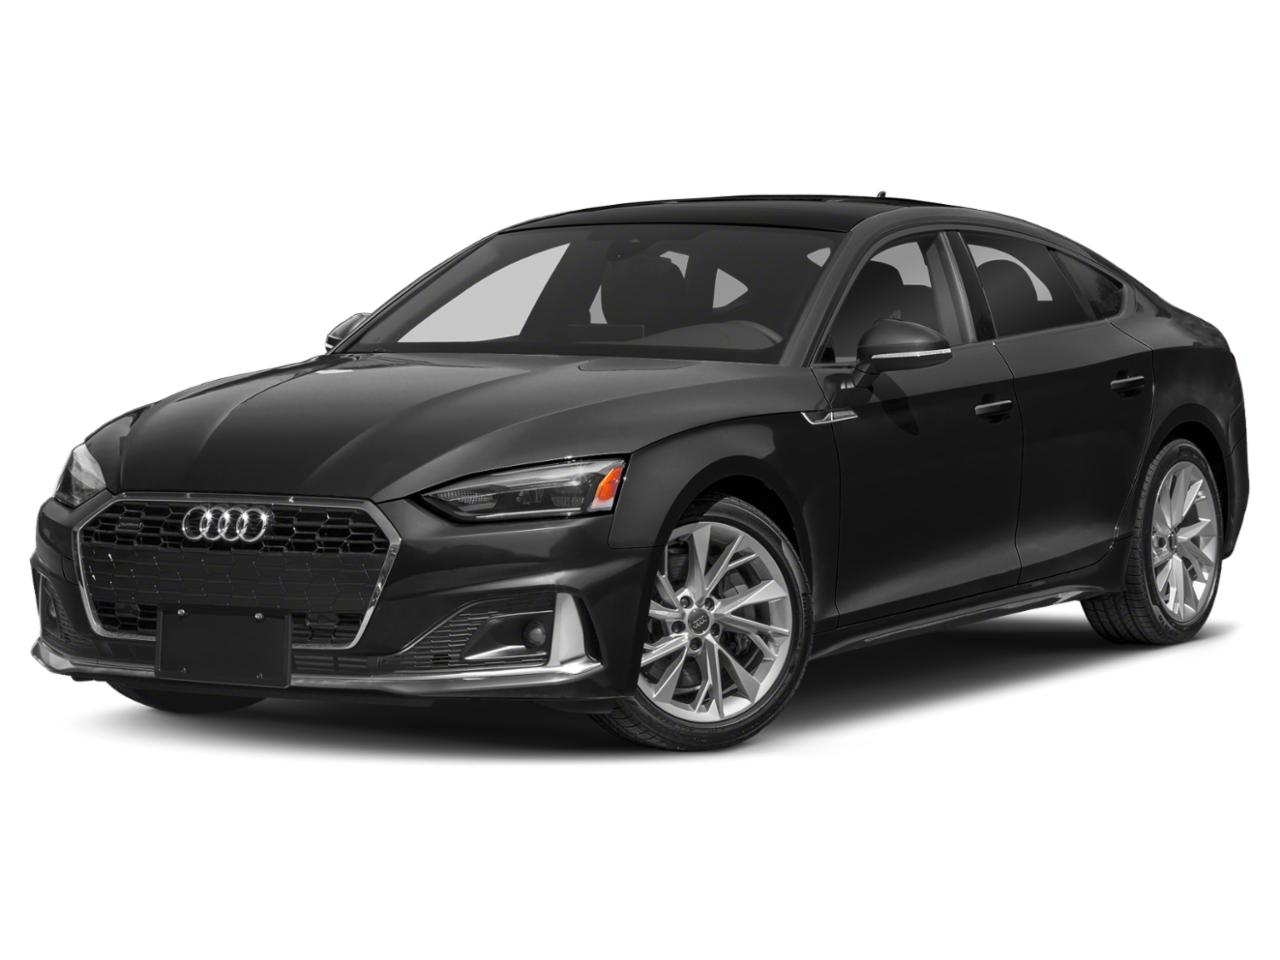 2021 Audi A5 Sportback Vehicle Photo in Sugar Land, TX 77478